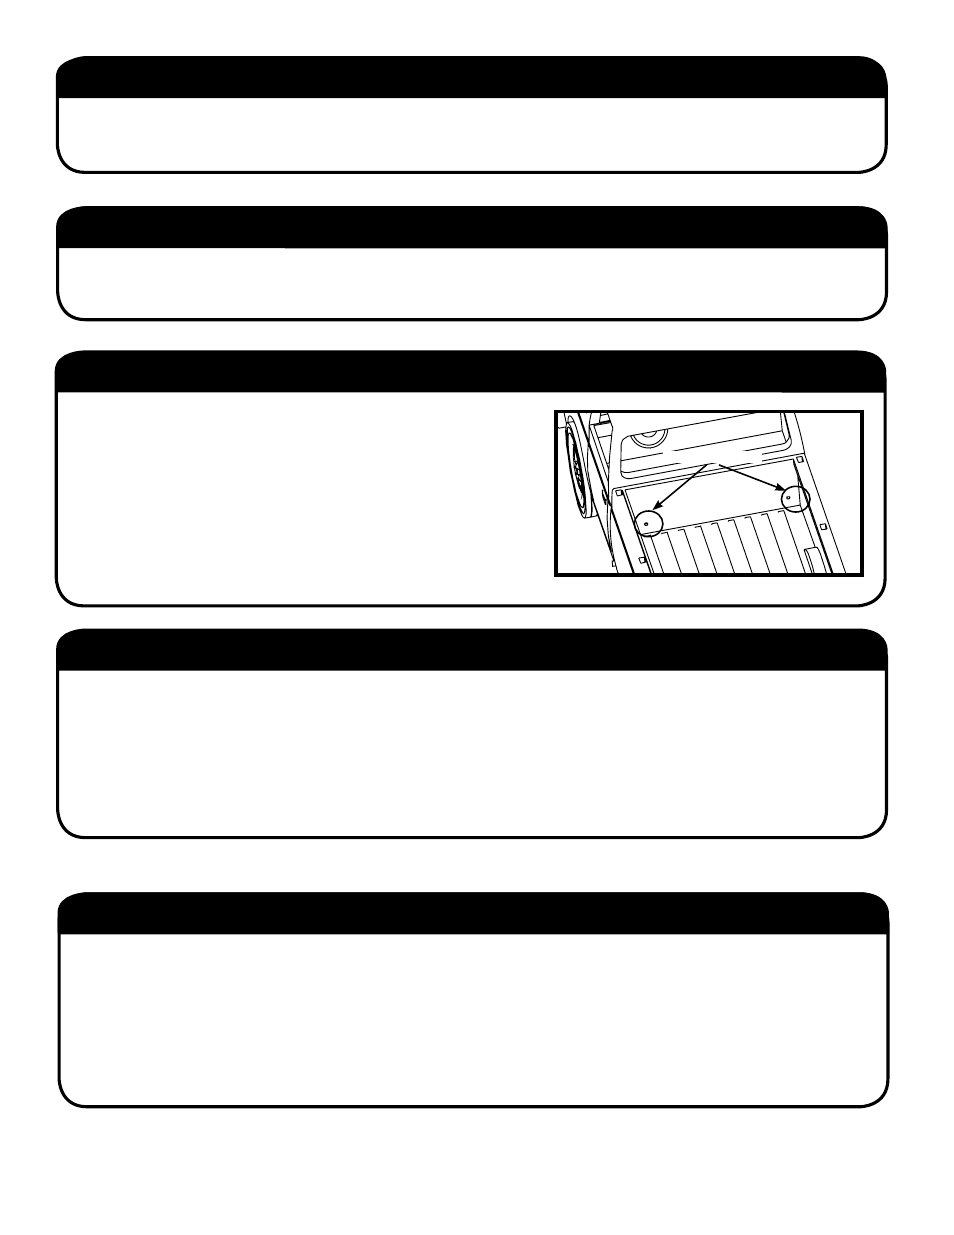 Drain Hole Locations Step 1 Remove Contents Plywood Packaging Nissan Wiring Harness Parts Tools Required For Assembly Before You Start Pace Edwards Bl Titan User Manual